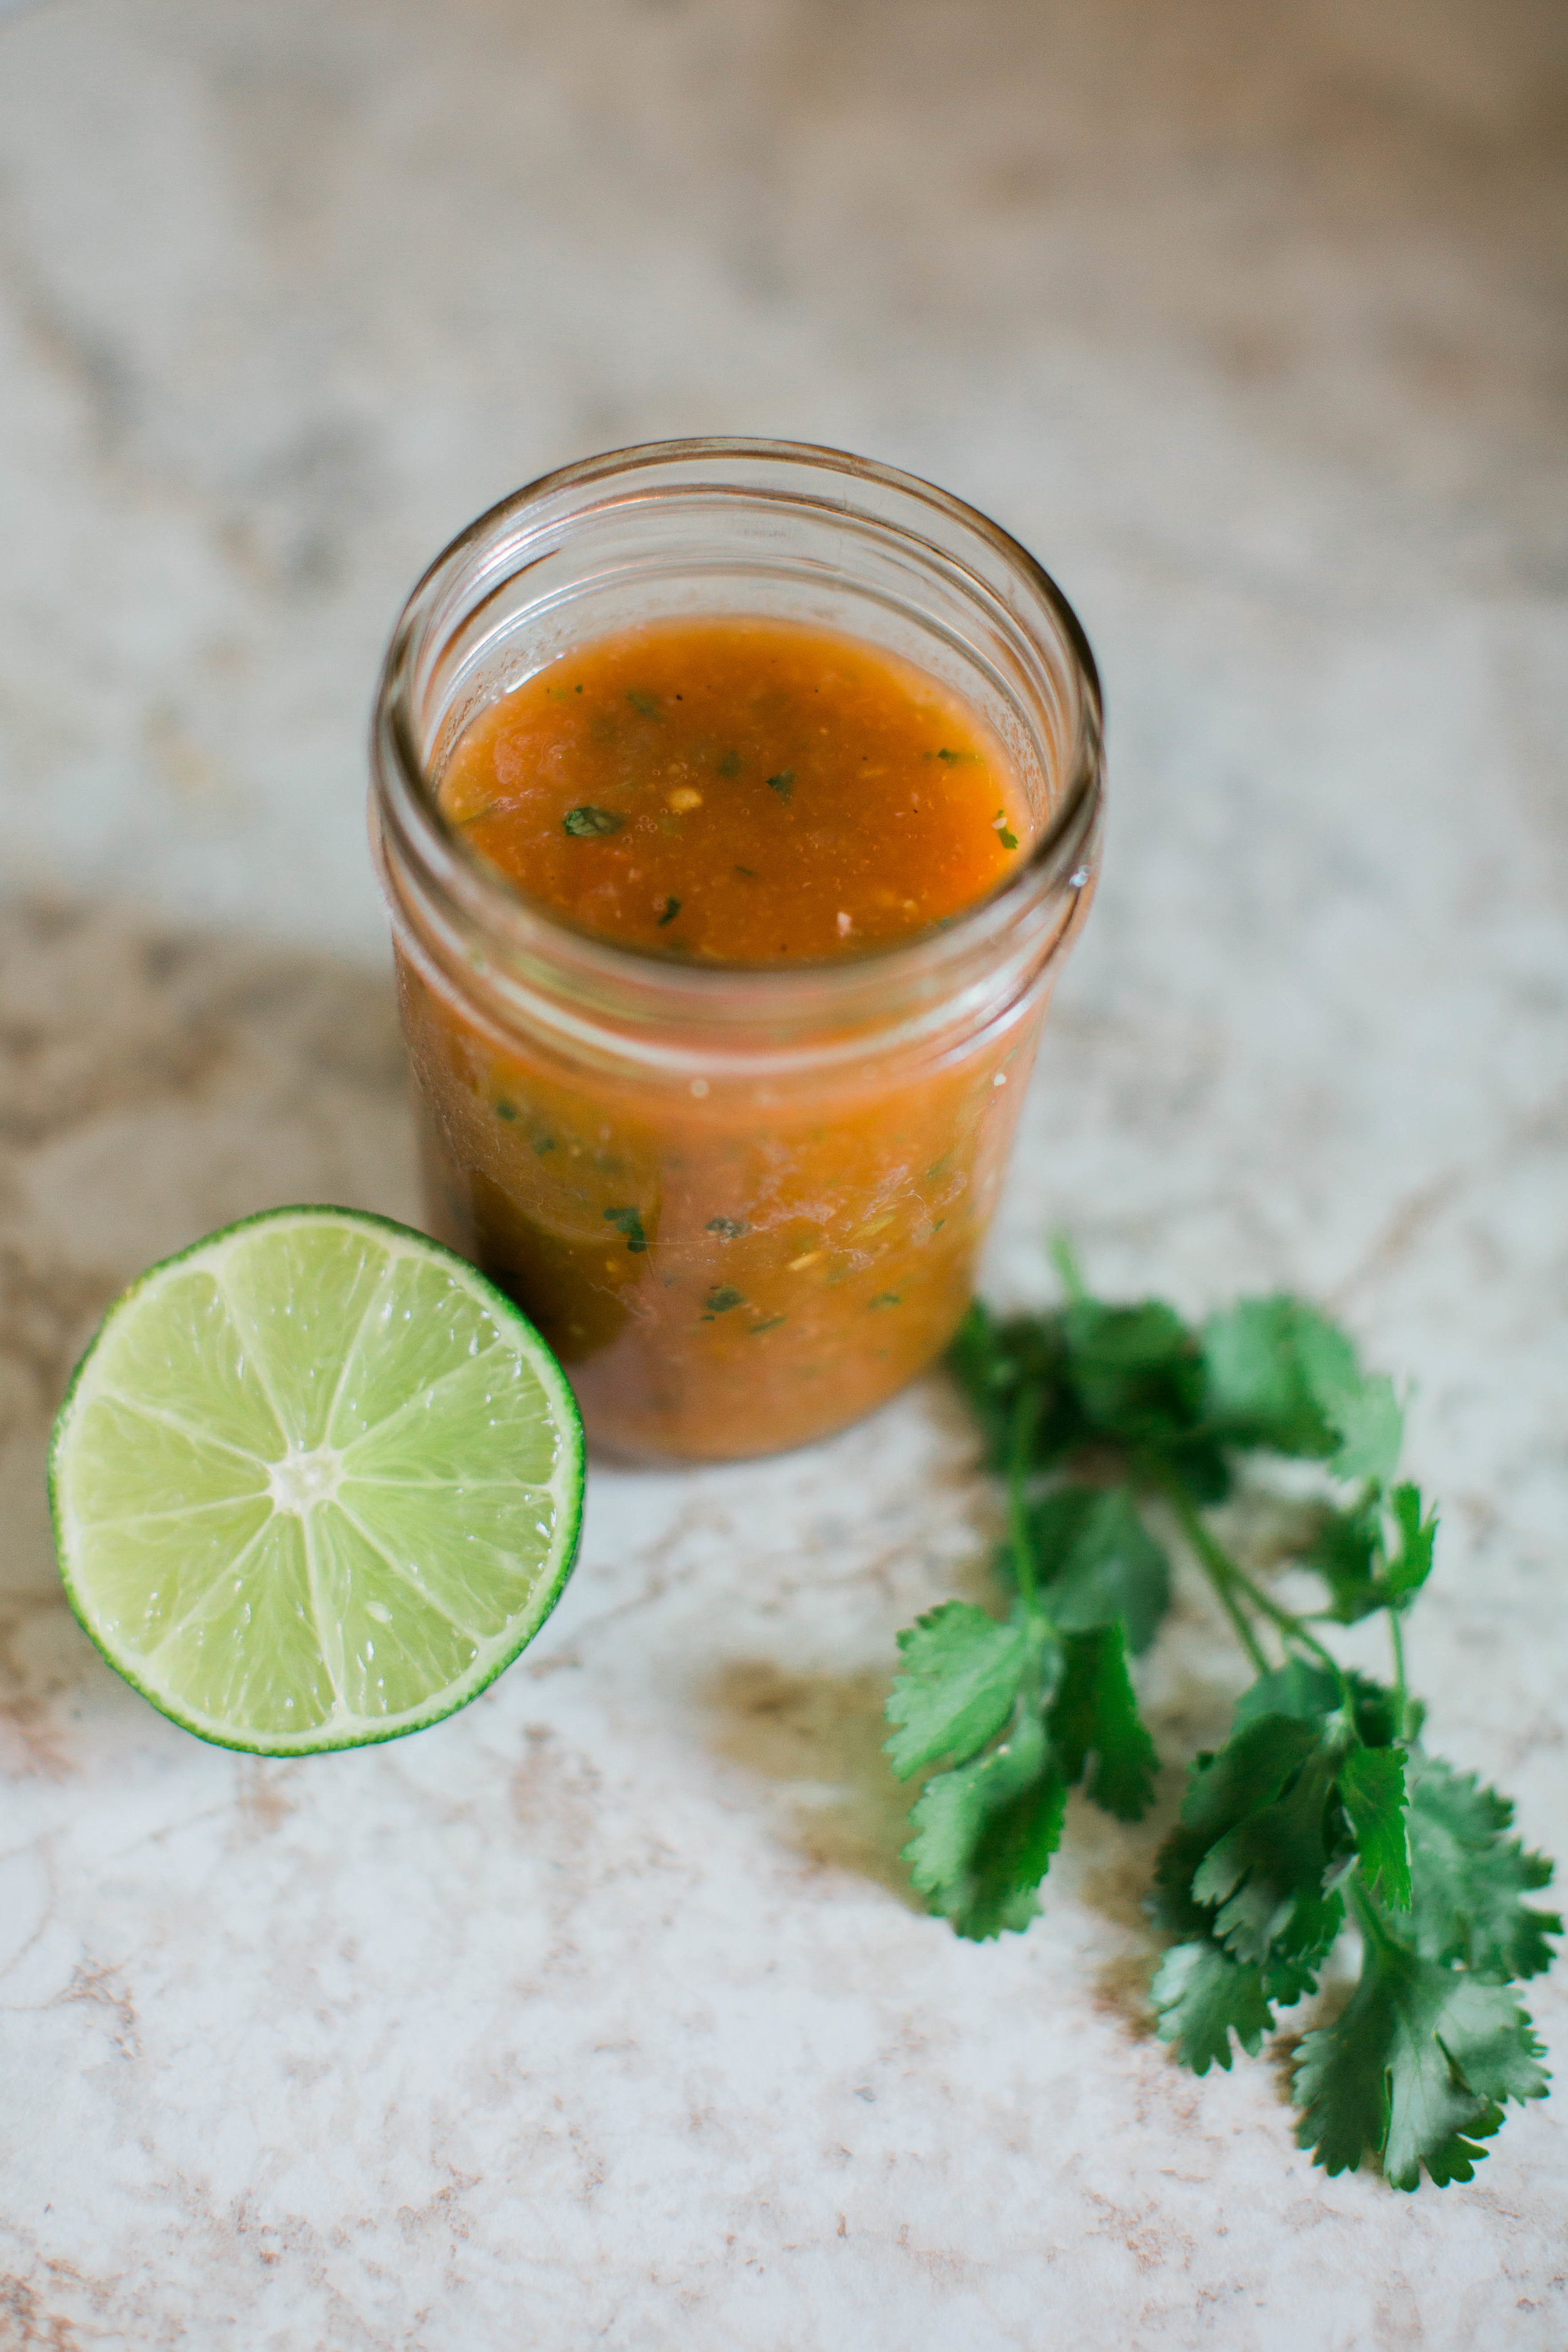 jennahazelphotography-super-simple-salsa-6549.jpg